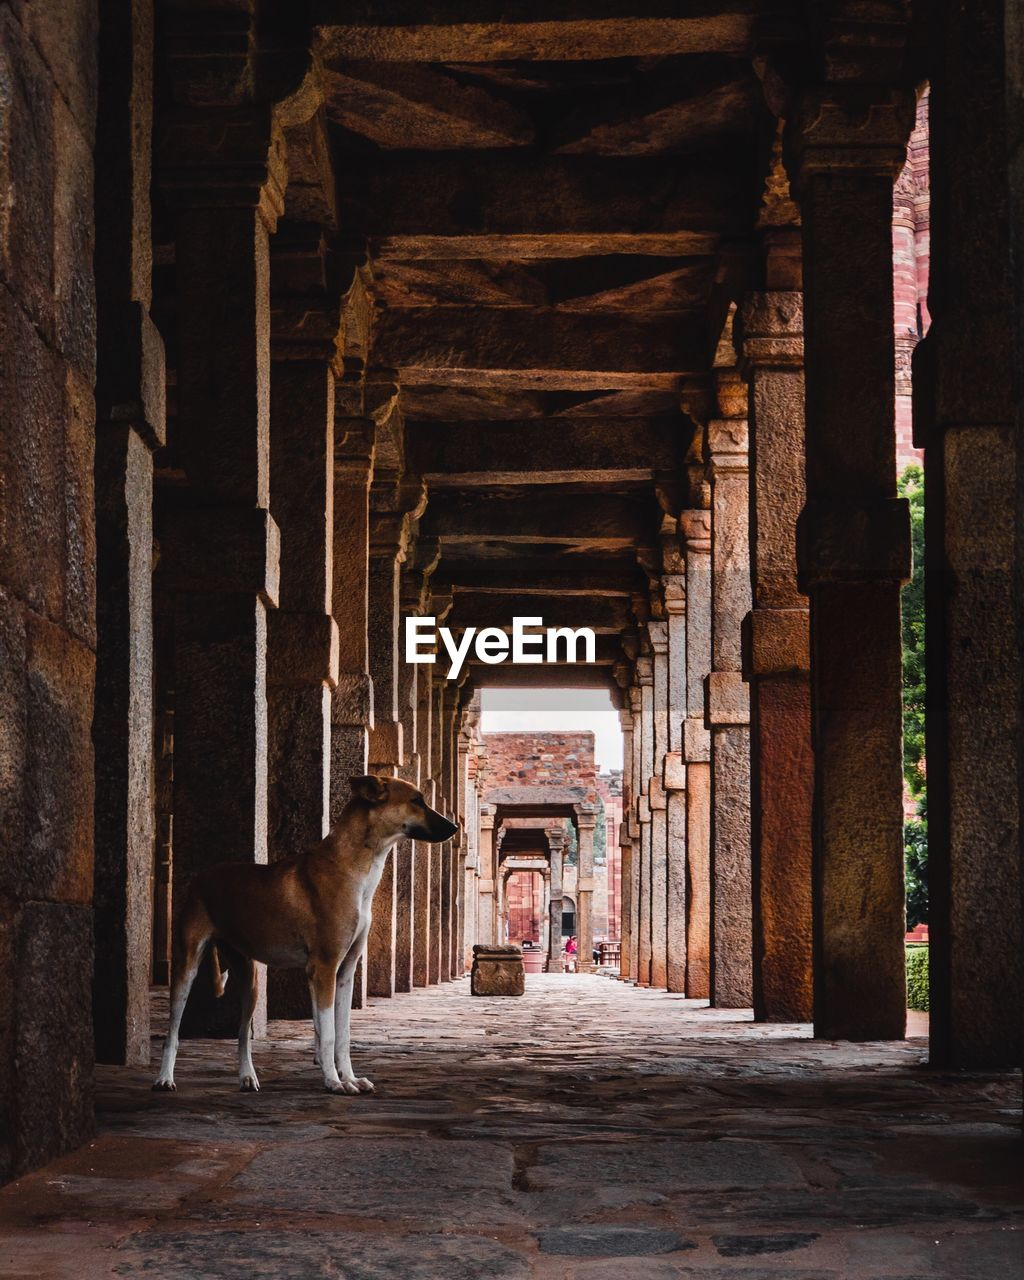 architecture, built structure, architectural column, animal, animal themes, one animal, domestic animals, mammal, pets, domestic, the past, dog, the way forward, canine, history, direction, vertebrate, building, day, full length, colonnade, ancient civilization